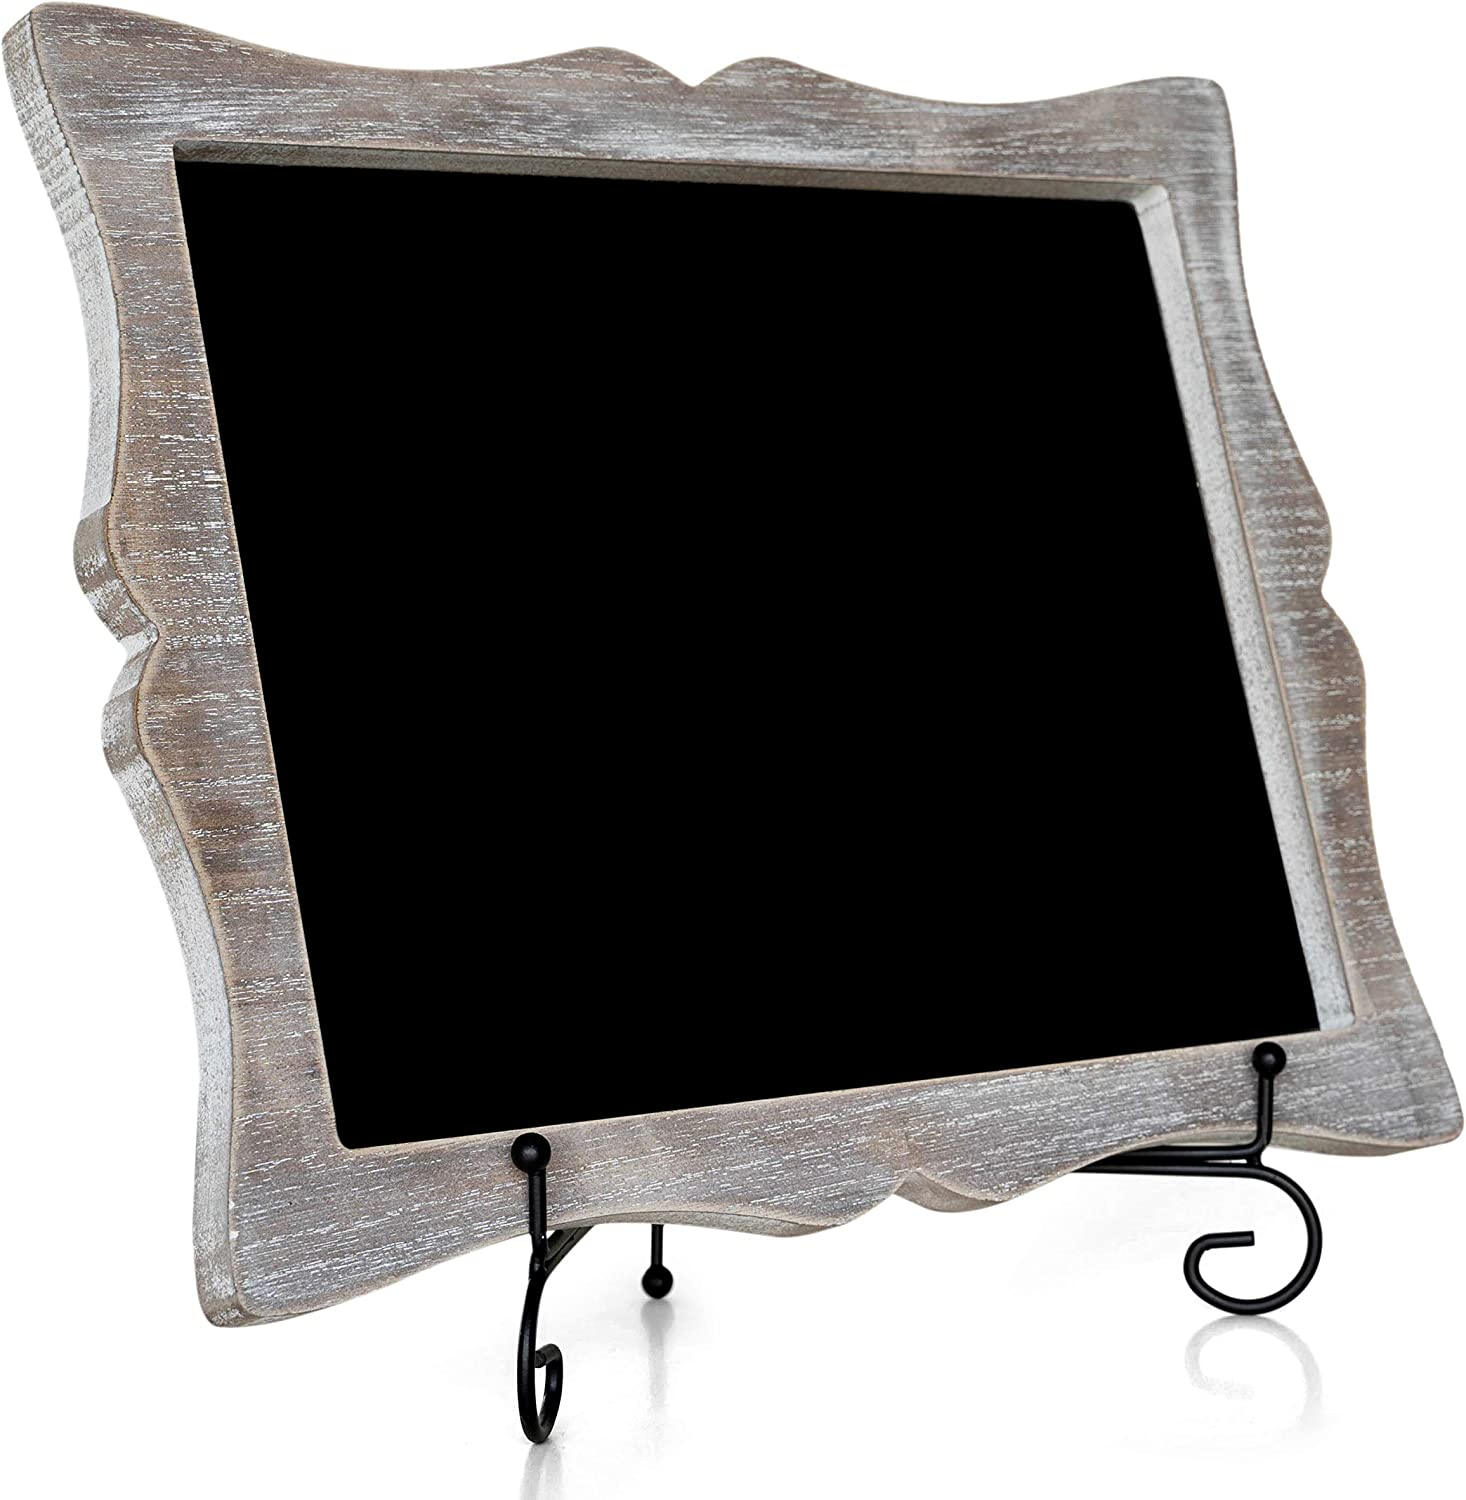 Chalkboard Sign with Easel - Hand Crafted Tabletop Chalkboard for Wedding Signs, Kitchen Decor - Small Chalk Board with Frame (Wooden) - Hanging or ...